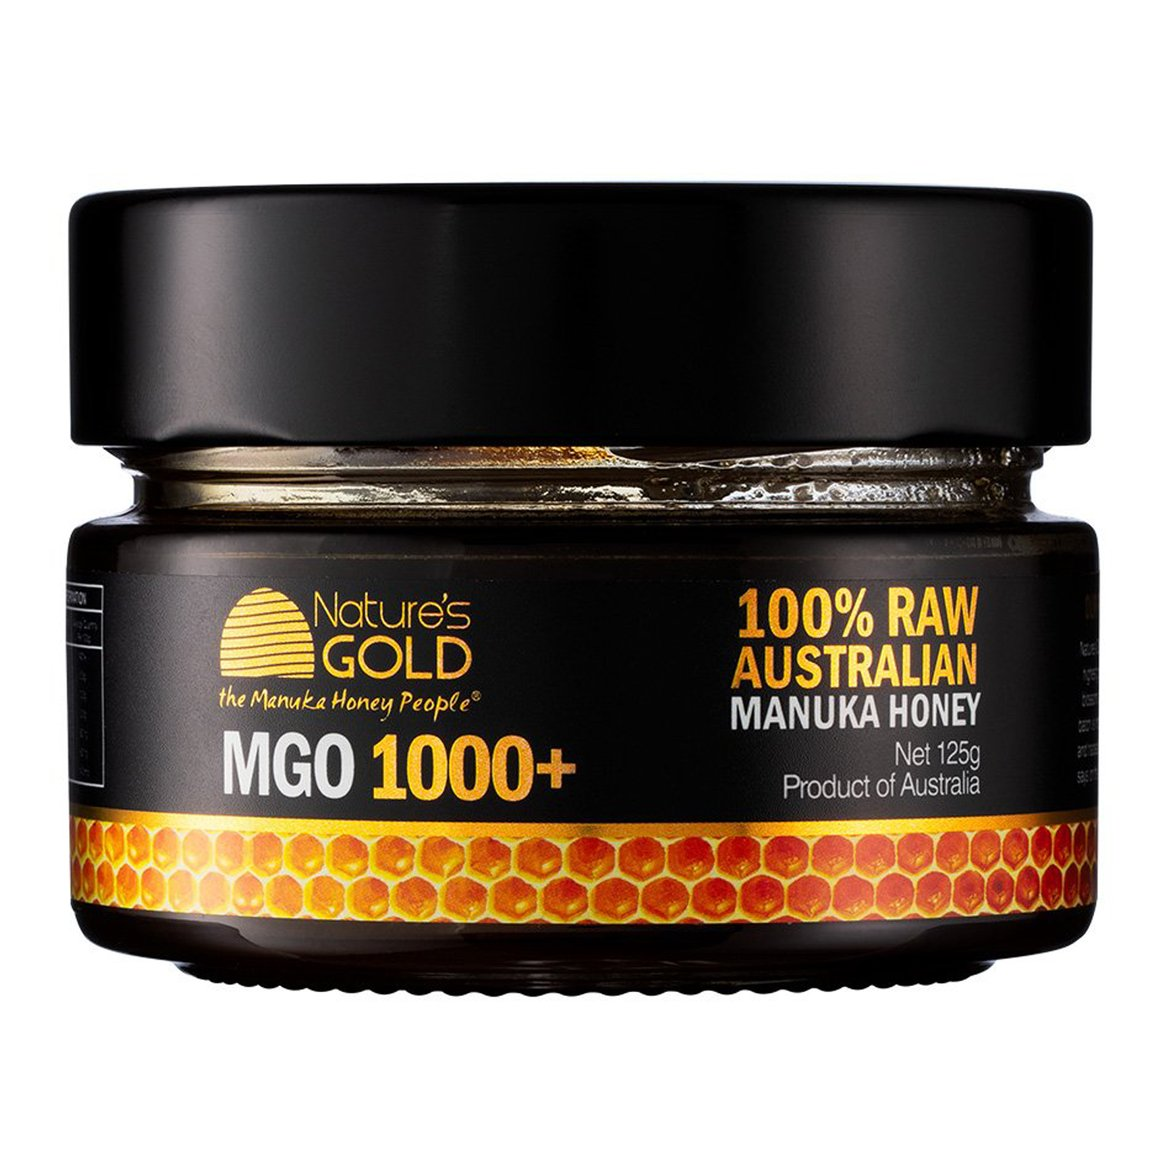 Premium 1000 mgo Raw Australian manuka honey